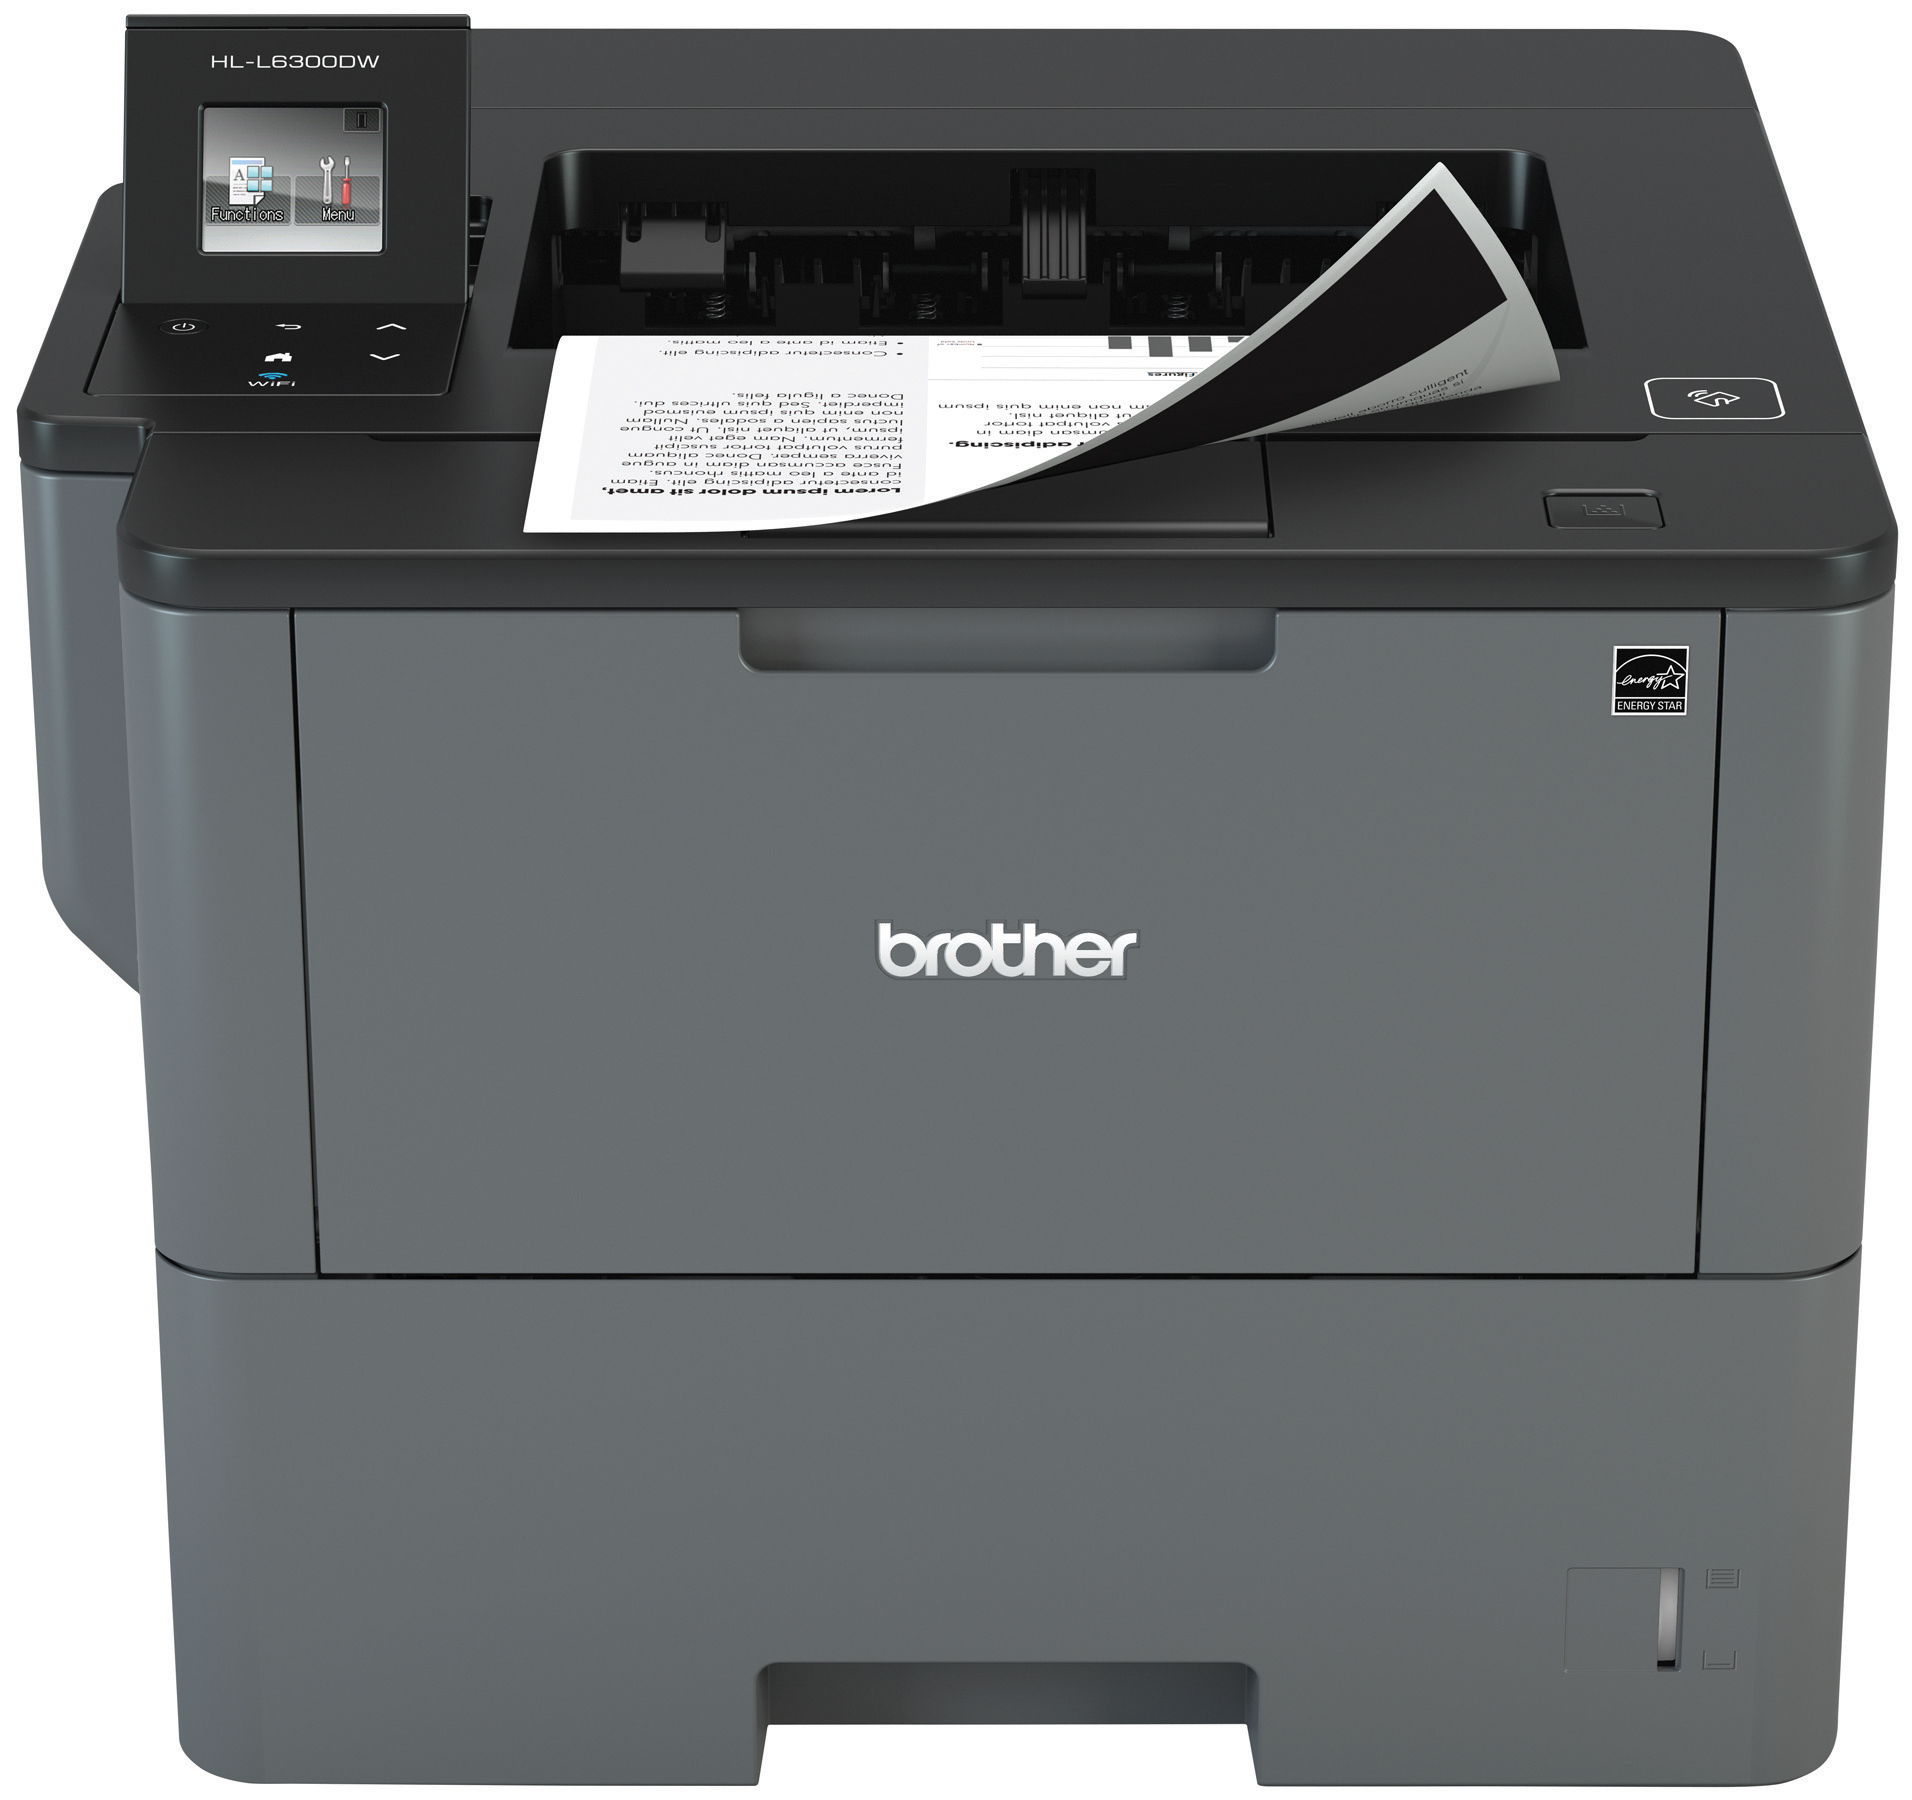 Brother Monochrome Laser Printer, HL-L6300DW, Wireless Networking, Mobile Printing, Duplex Printing, Large Paper Capacity, Cloud Printing